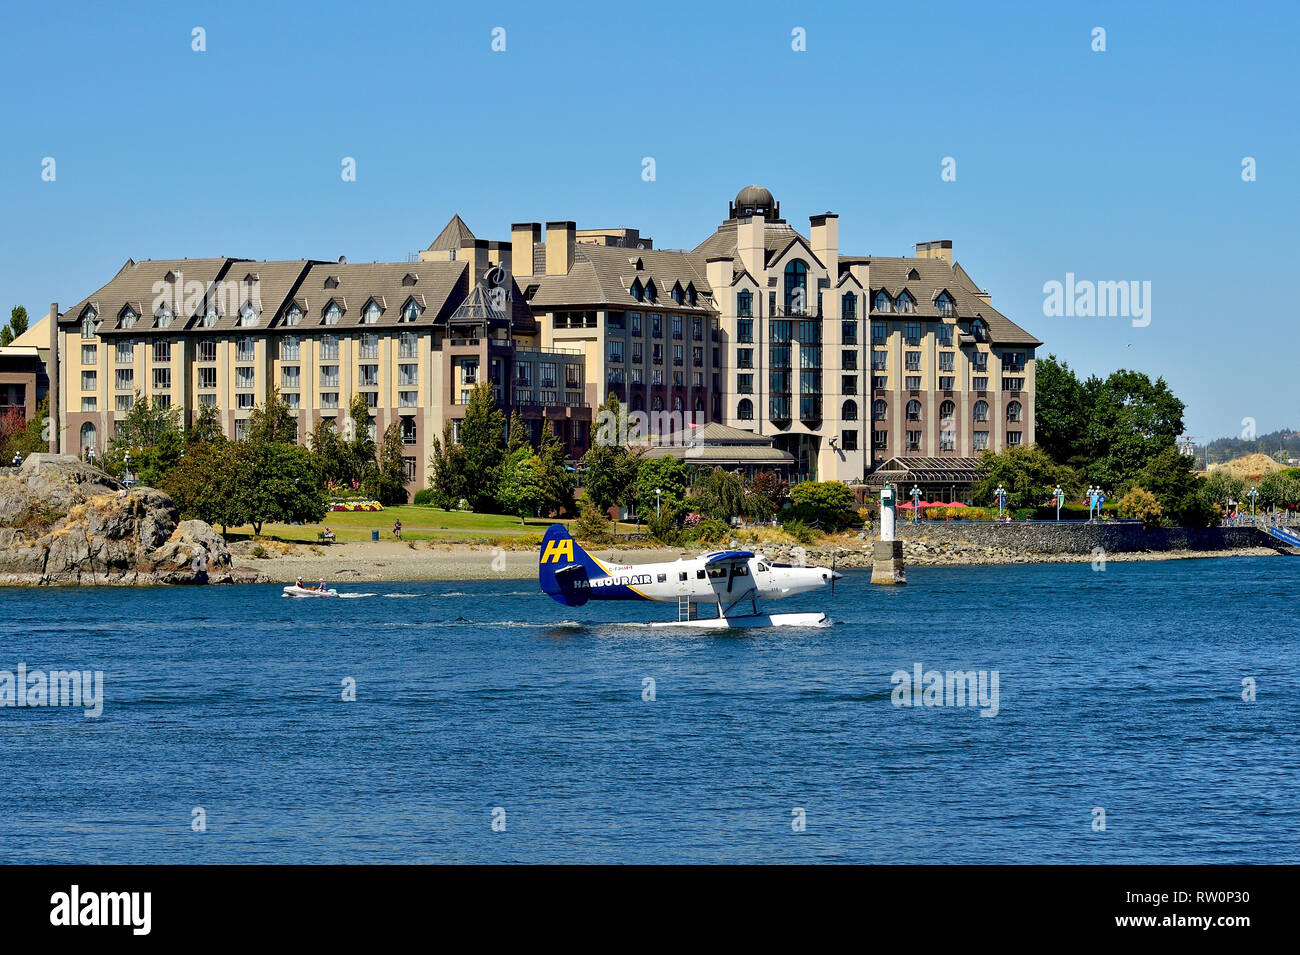 A horizontal image of the Delta Hotel on the shore of the inner harbour in Victoria, Vancouver Island with a commuter float plane taxing by on the wat - Stock Image